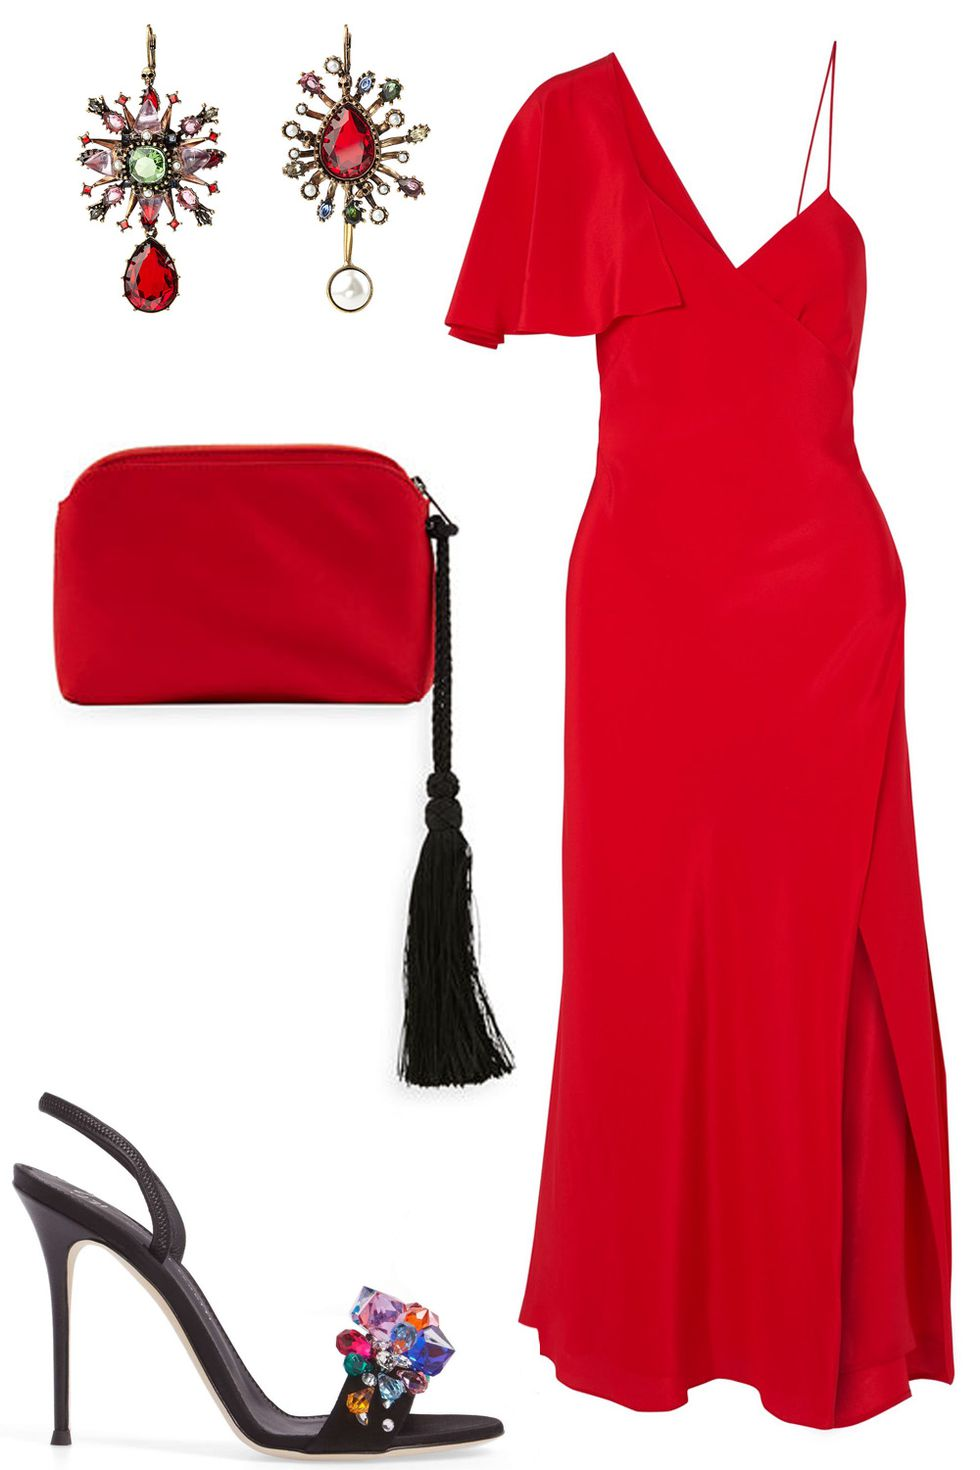 what-to-wear-for-a-summer-wedding-guest-outfit-red-dress-slip-midi-oneshoulder-earrings-red-bag-clutch-black-shoe-sandalh-dinner.jpg